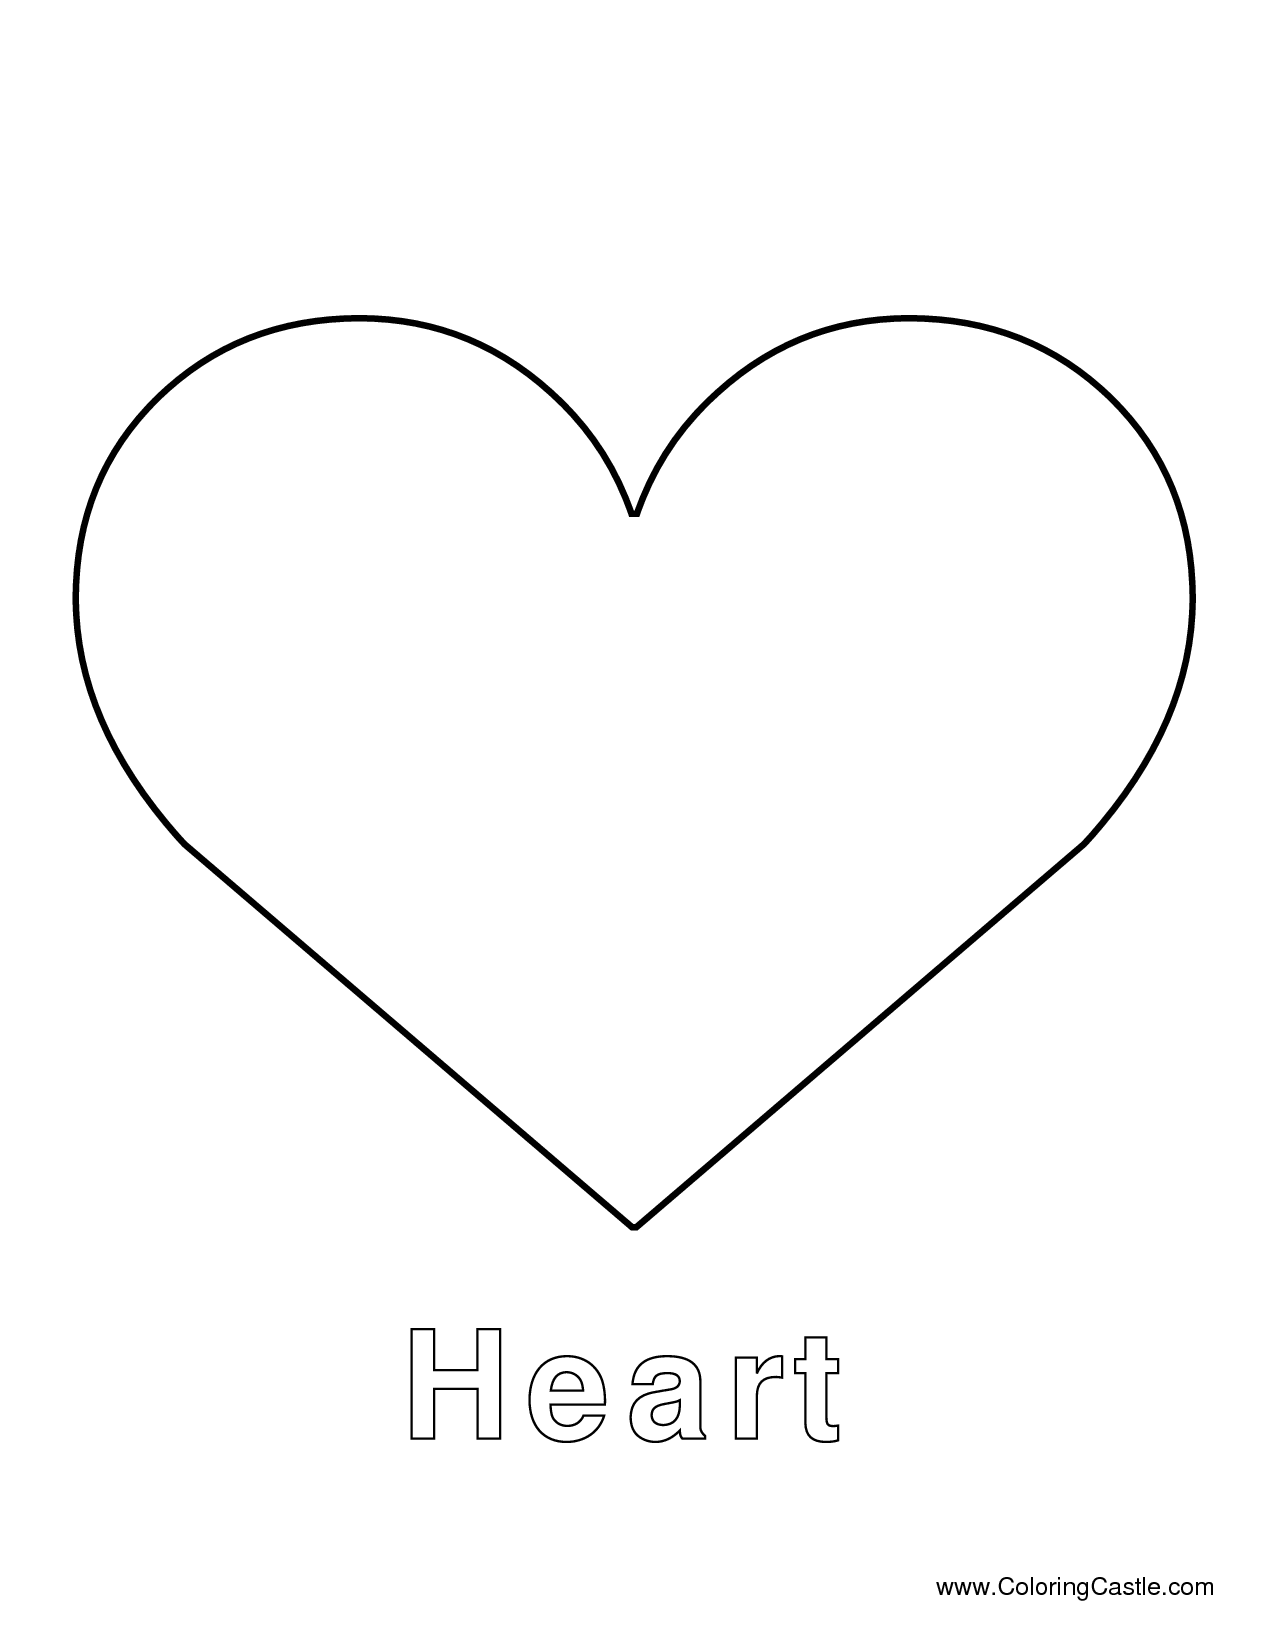 Uncategorized Valentine Heart Template heart stencils to print google search pinterest search